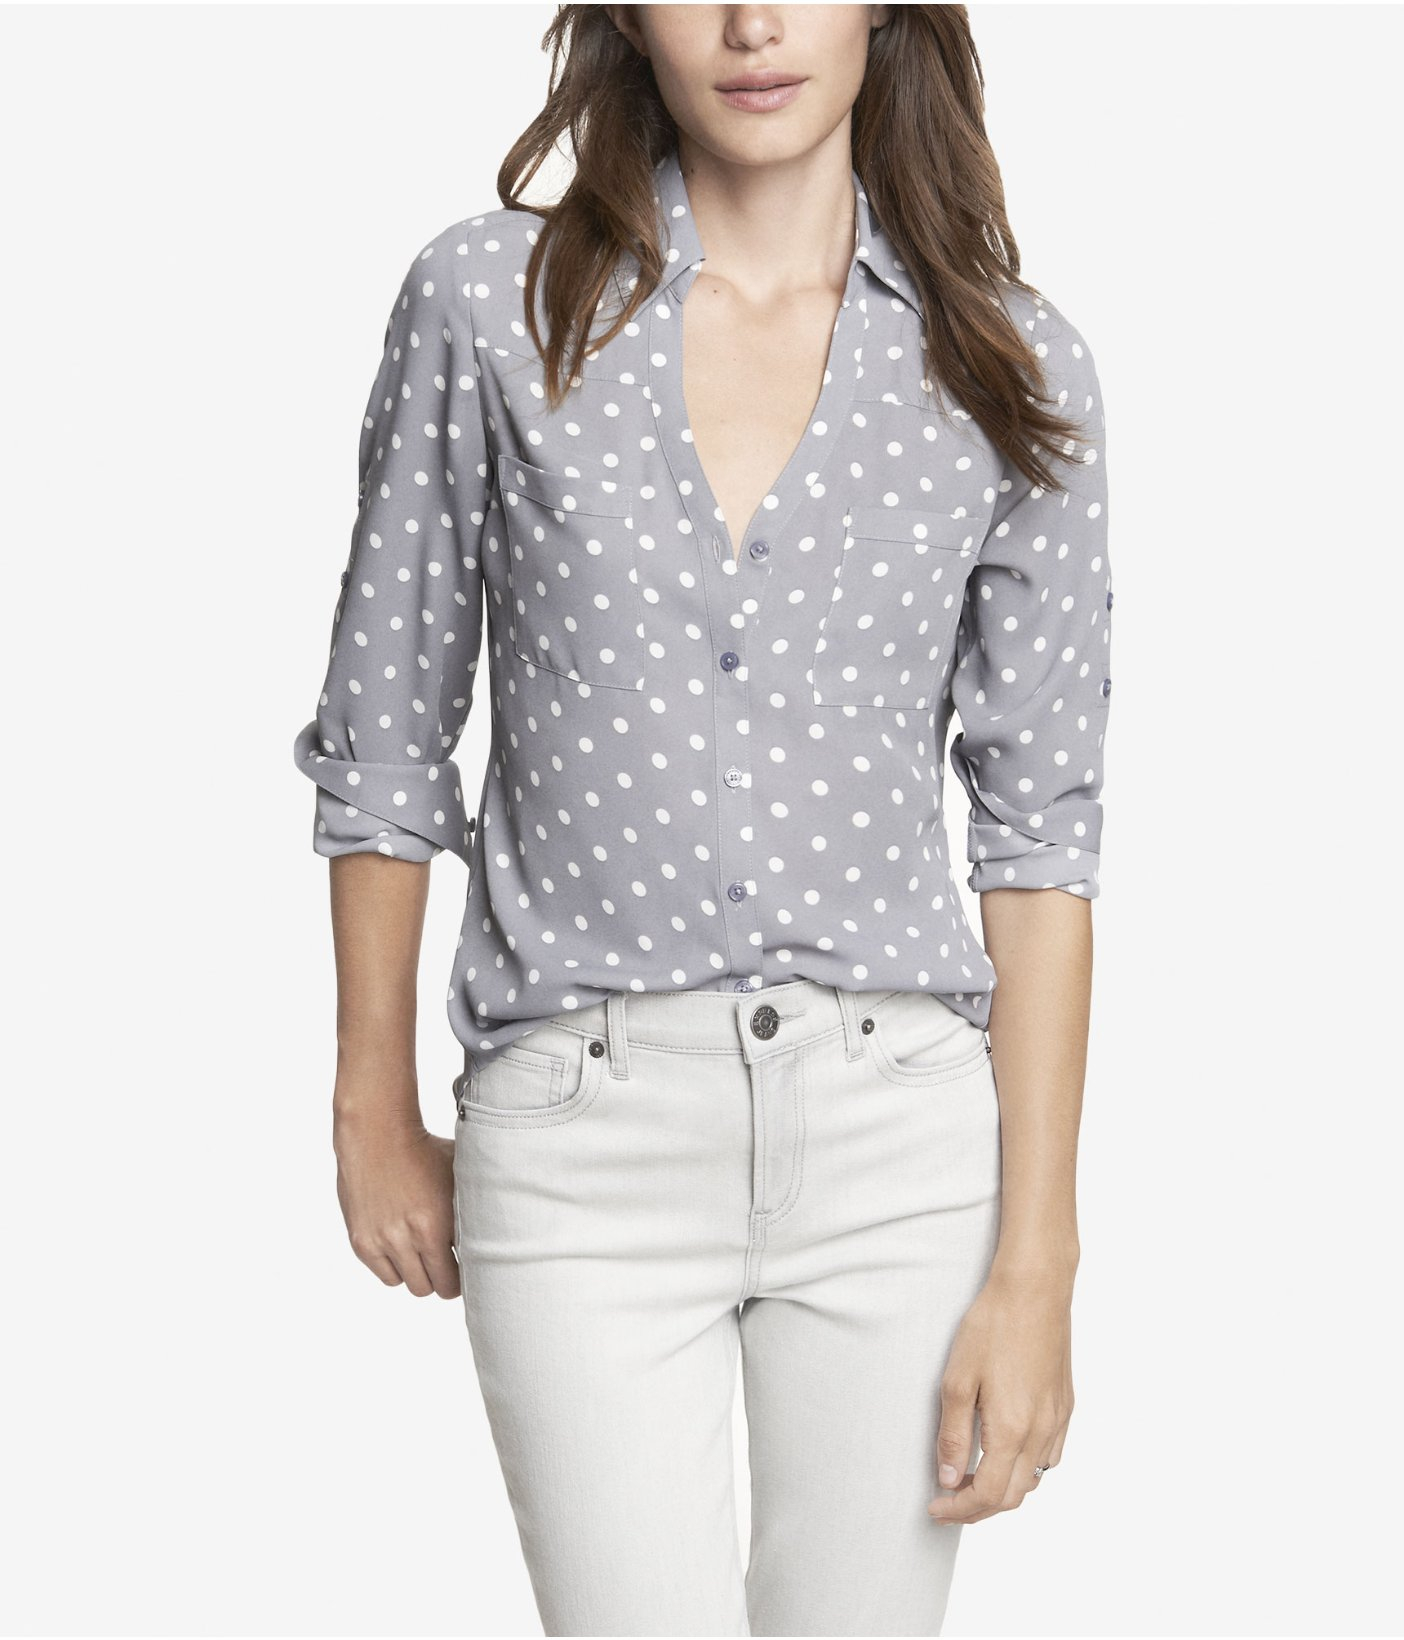 Express Polka Dot Convertible Sleeve Portofino Shirt In Gray Lyst